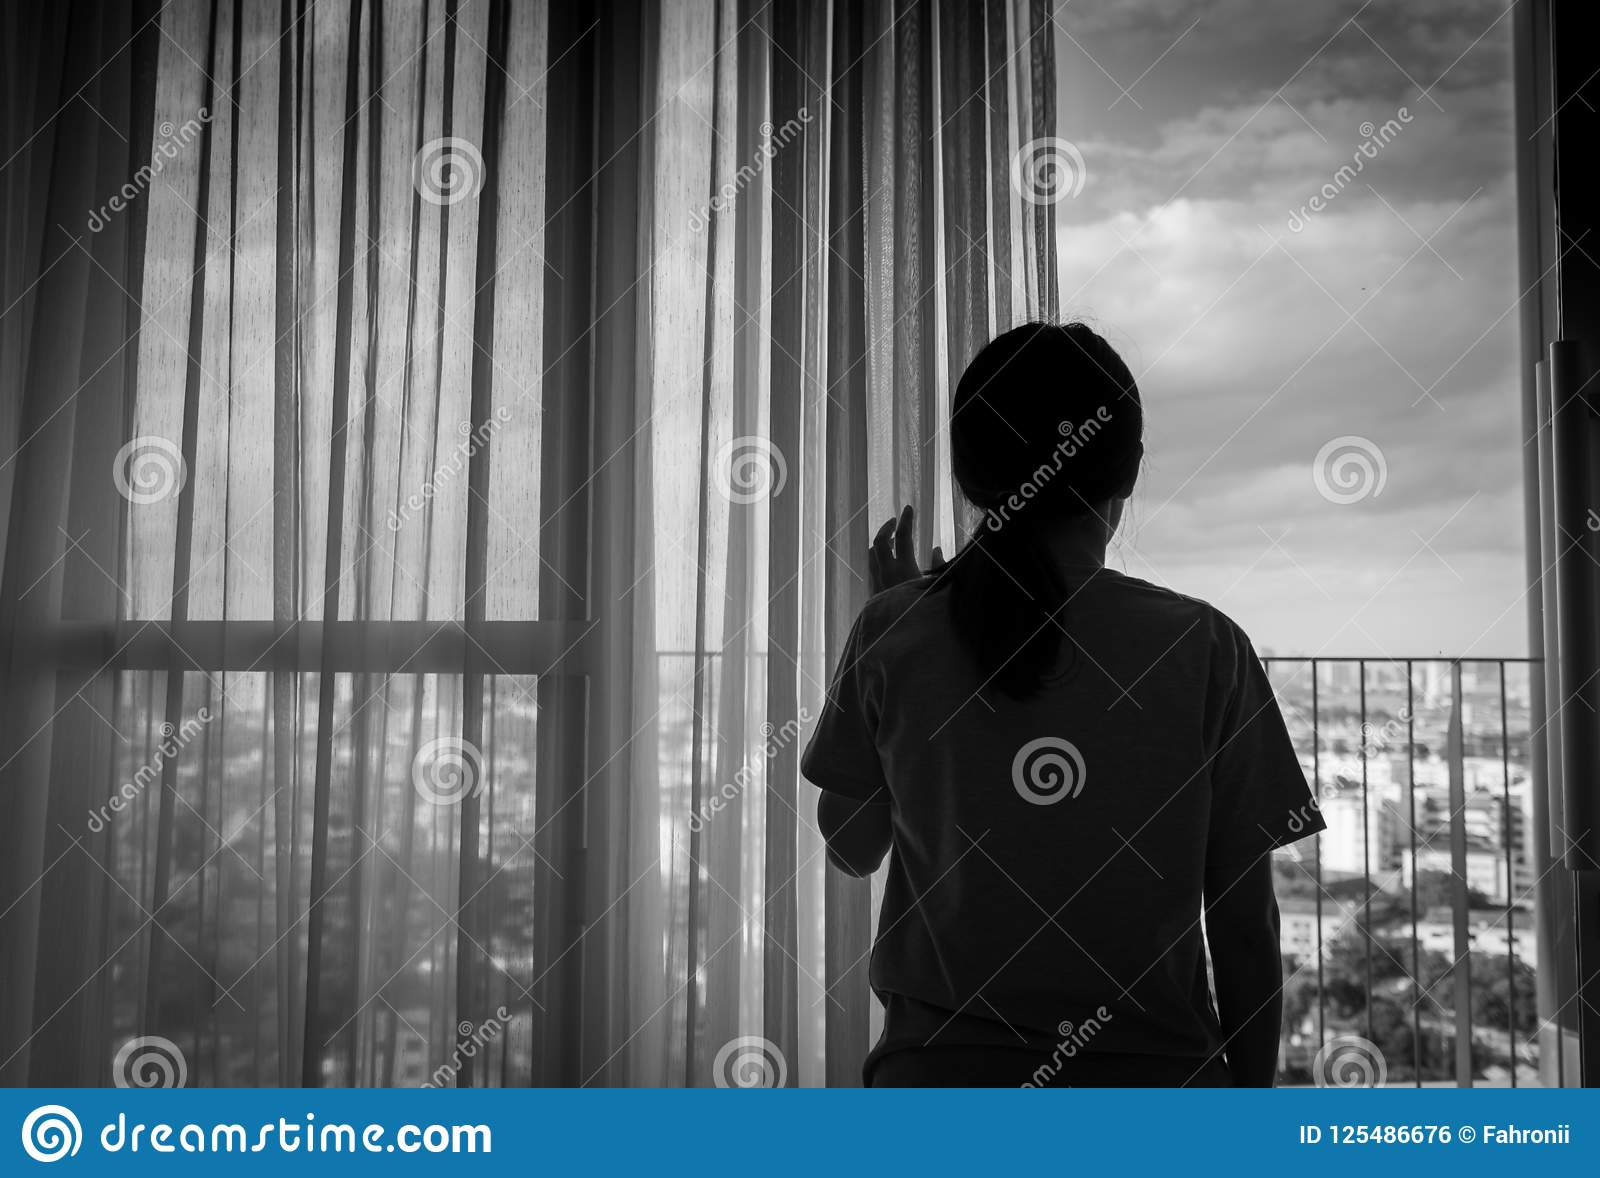 Sad adult Asian woman looking out of window and thinking. Stressed and depressed young woman. Despair women with long hair